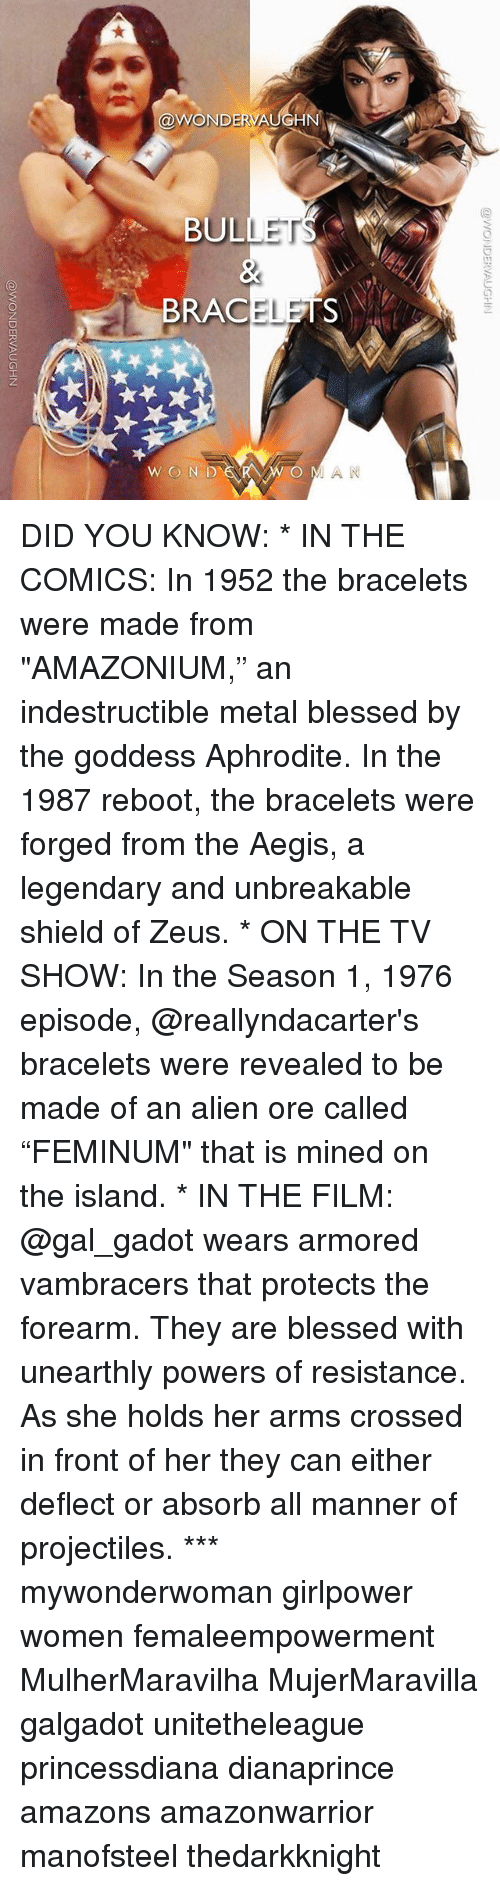 """Blessed, Memes, and Alien: @WONDERVA  BULLET  BRACELETS  WON D  O MAN DID YOU KNOW: * IN THE COMICS: In 1952 the bracelets were made from """"AMAZONIUM,"""" an indestructible metal blessed by the goddess Aphrodite. In the 1987 reboot, the bracelets were forged from the Aegis, a legendary and unbreakable shield of Zeus. * ON THE TV SHOW: In the Season 1, 1976 episode, @reallyndacarter's bracelets were revealed to be made of an alien ore called """"FEMINUM"""" that is mined on the island. * IN THE FILM: @gal_gadot wears armored vambracers that protects the forearm. They are blessed with unearthly powers of resistance. As she holds her arms crossed in front of her they can either deflect or absorb all manner of projectiles. *** mywonderwoman girlpower women femaleempowerment MulherMaravilha MujerMaravilla galgadot unitetheleague princessdiana dianaprince amazons amazonwarrior manofsteel thedarkknight"""